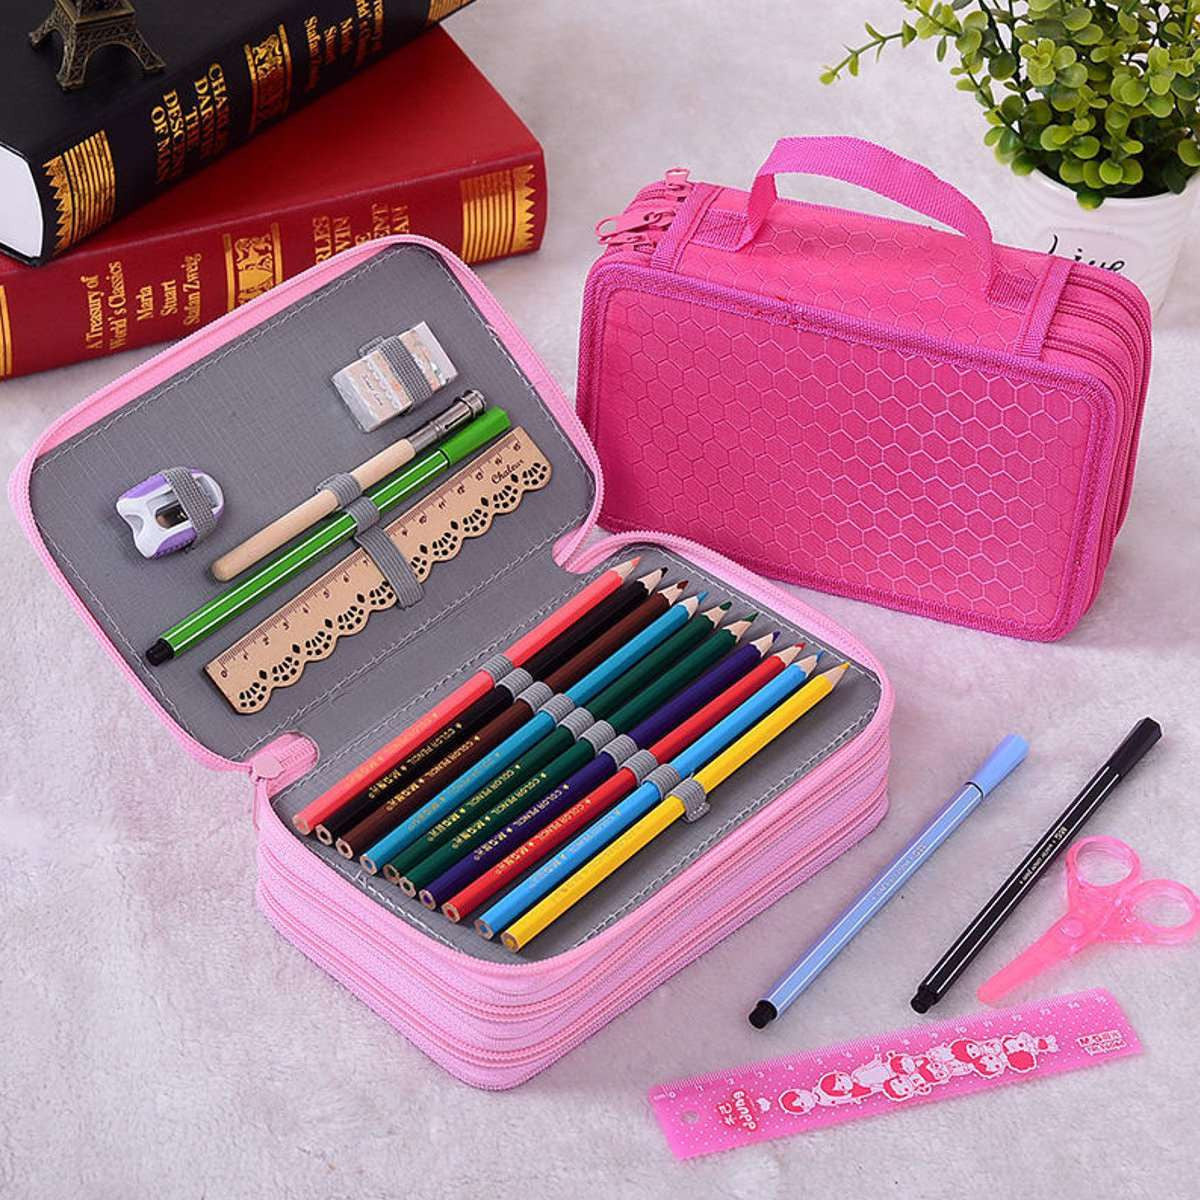 Pouch Professional Painting Pen Box Multifunction Pencil Case Travel Cosmetic Brush Makeup Storage Bagsrose reda